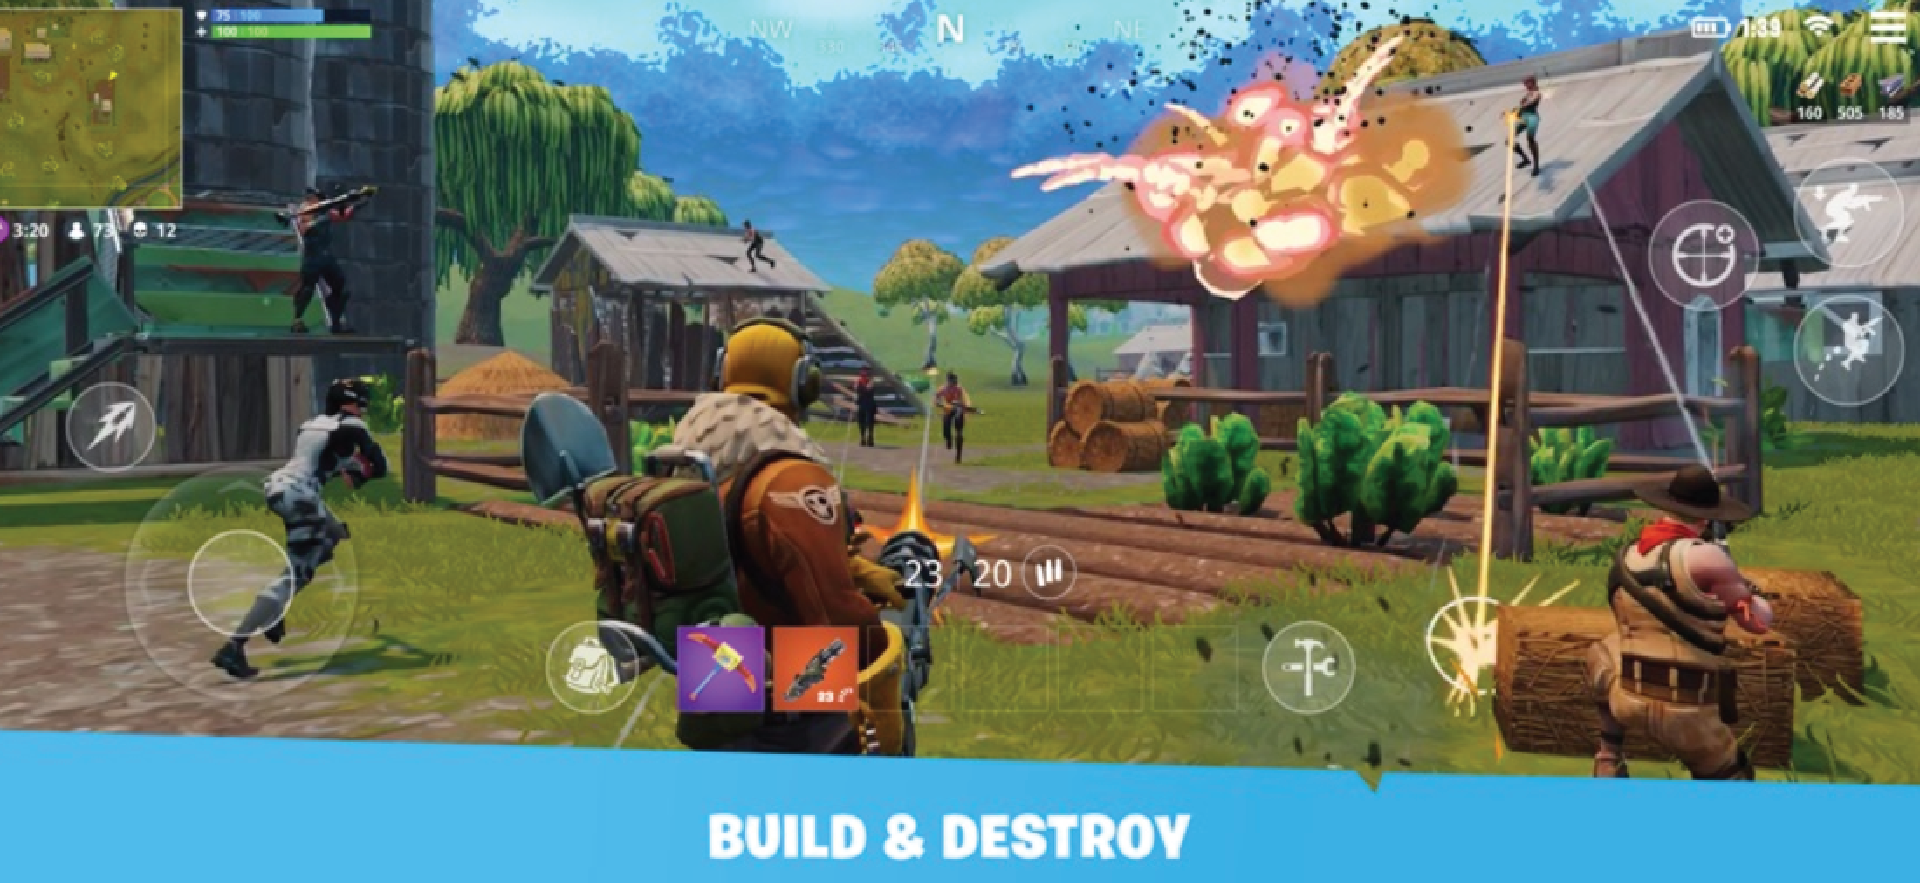 Install Fortnite Apk V16.20.0 For Realme Devices